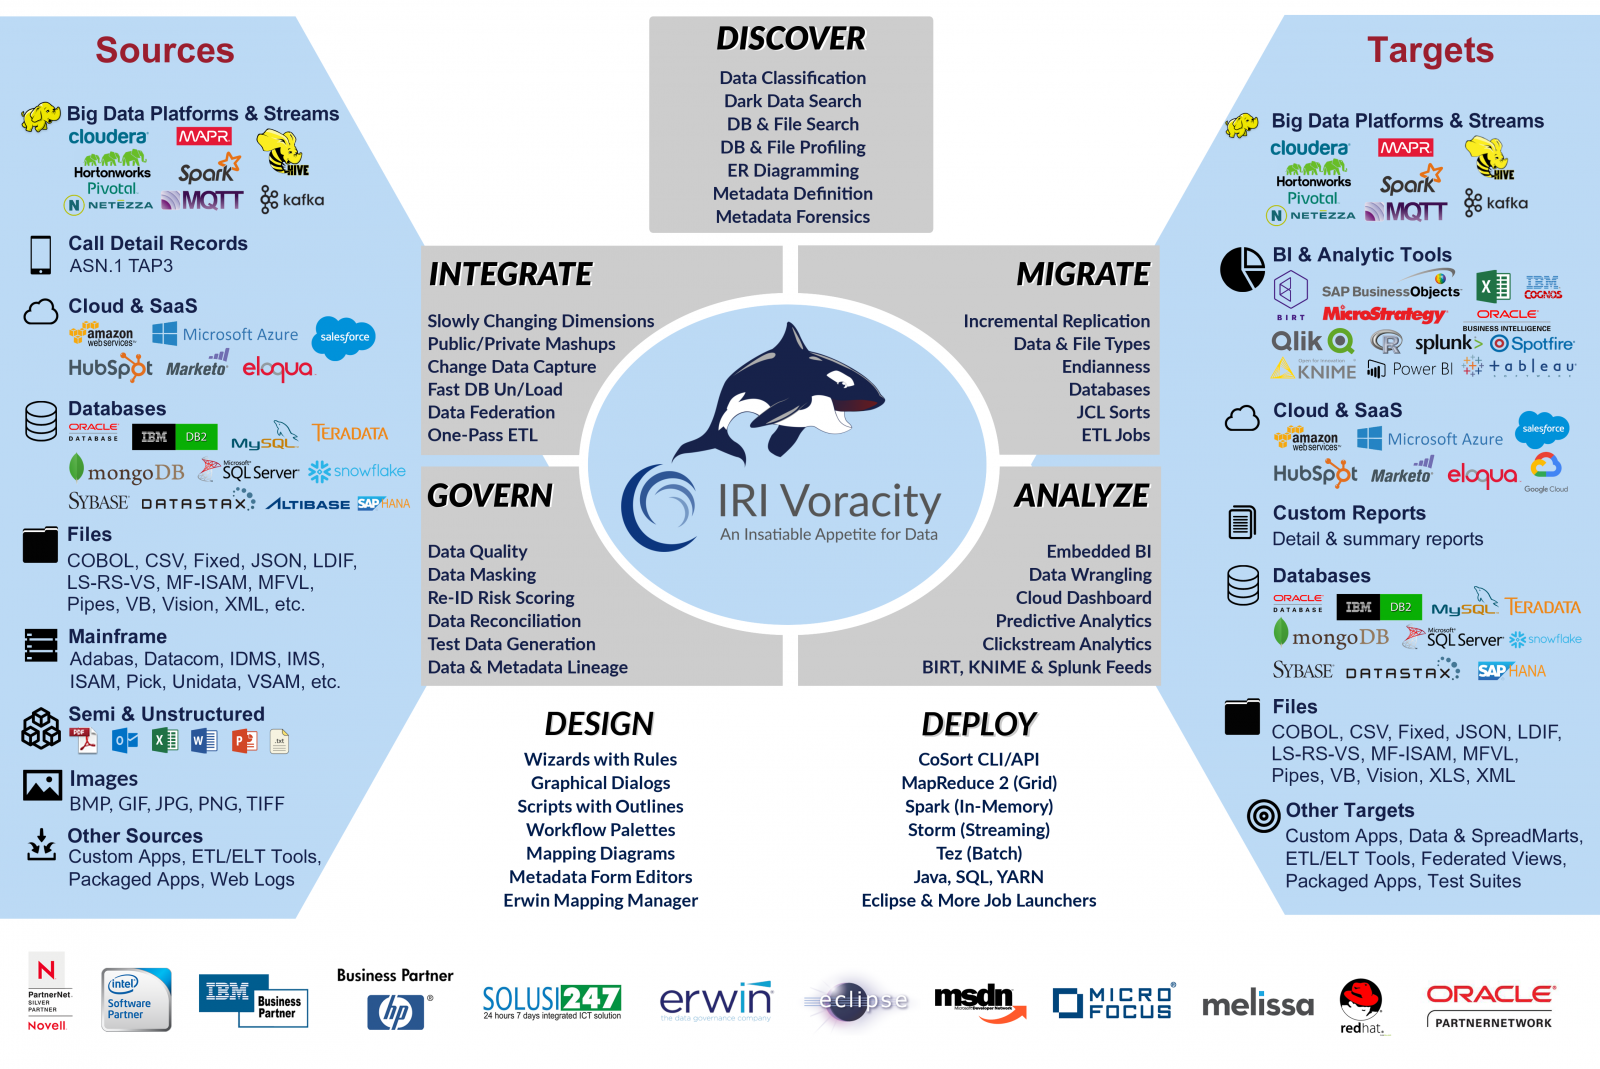 Voracity addresses the functional and performance aspects of big data DI and ETL, without the complexity or costs typical of the alternatives.